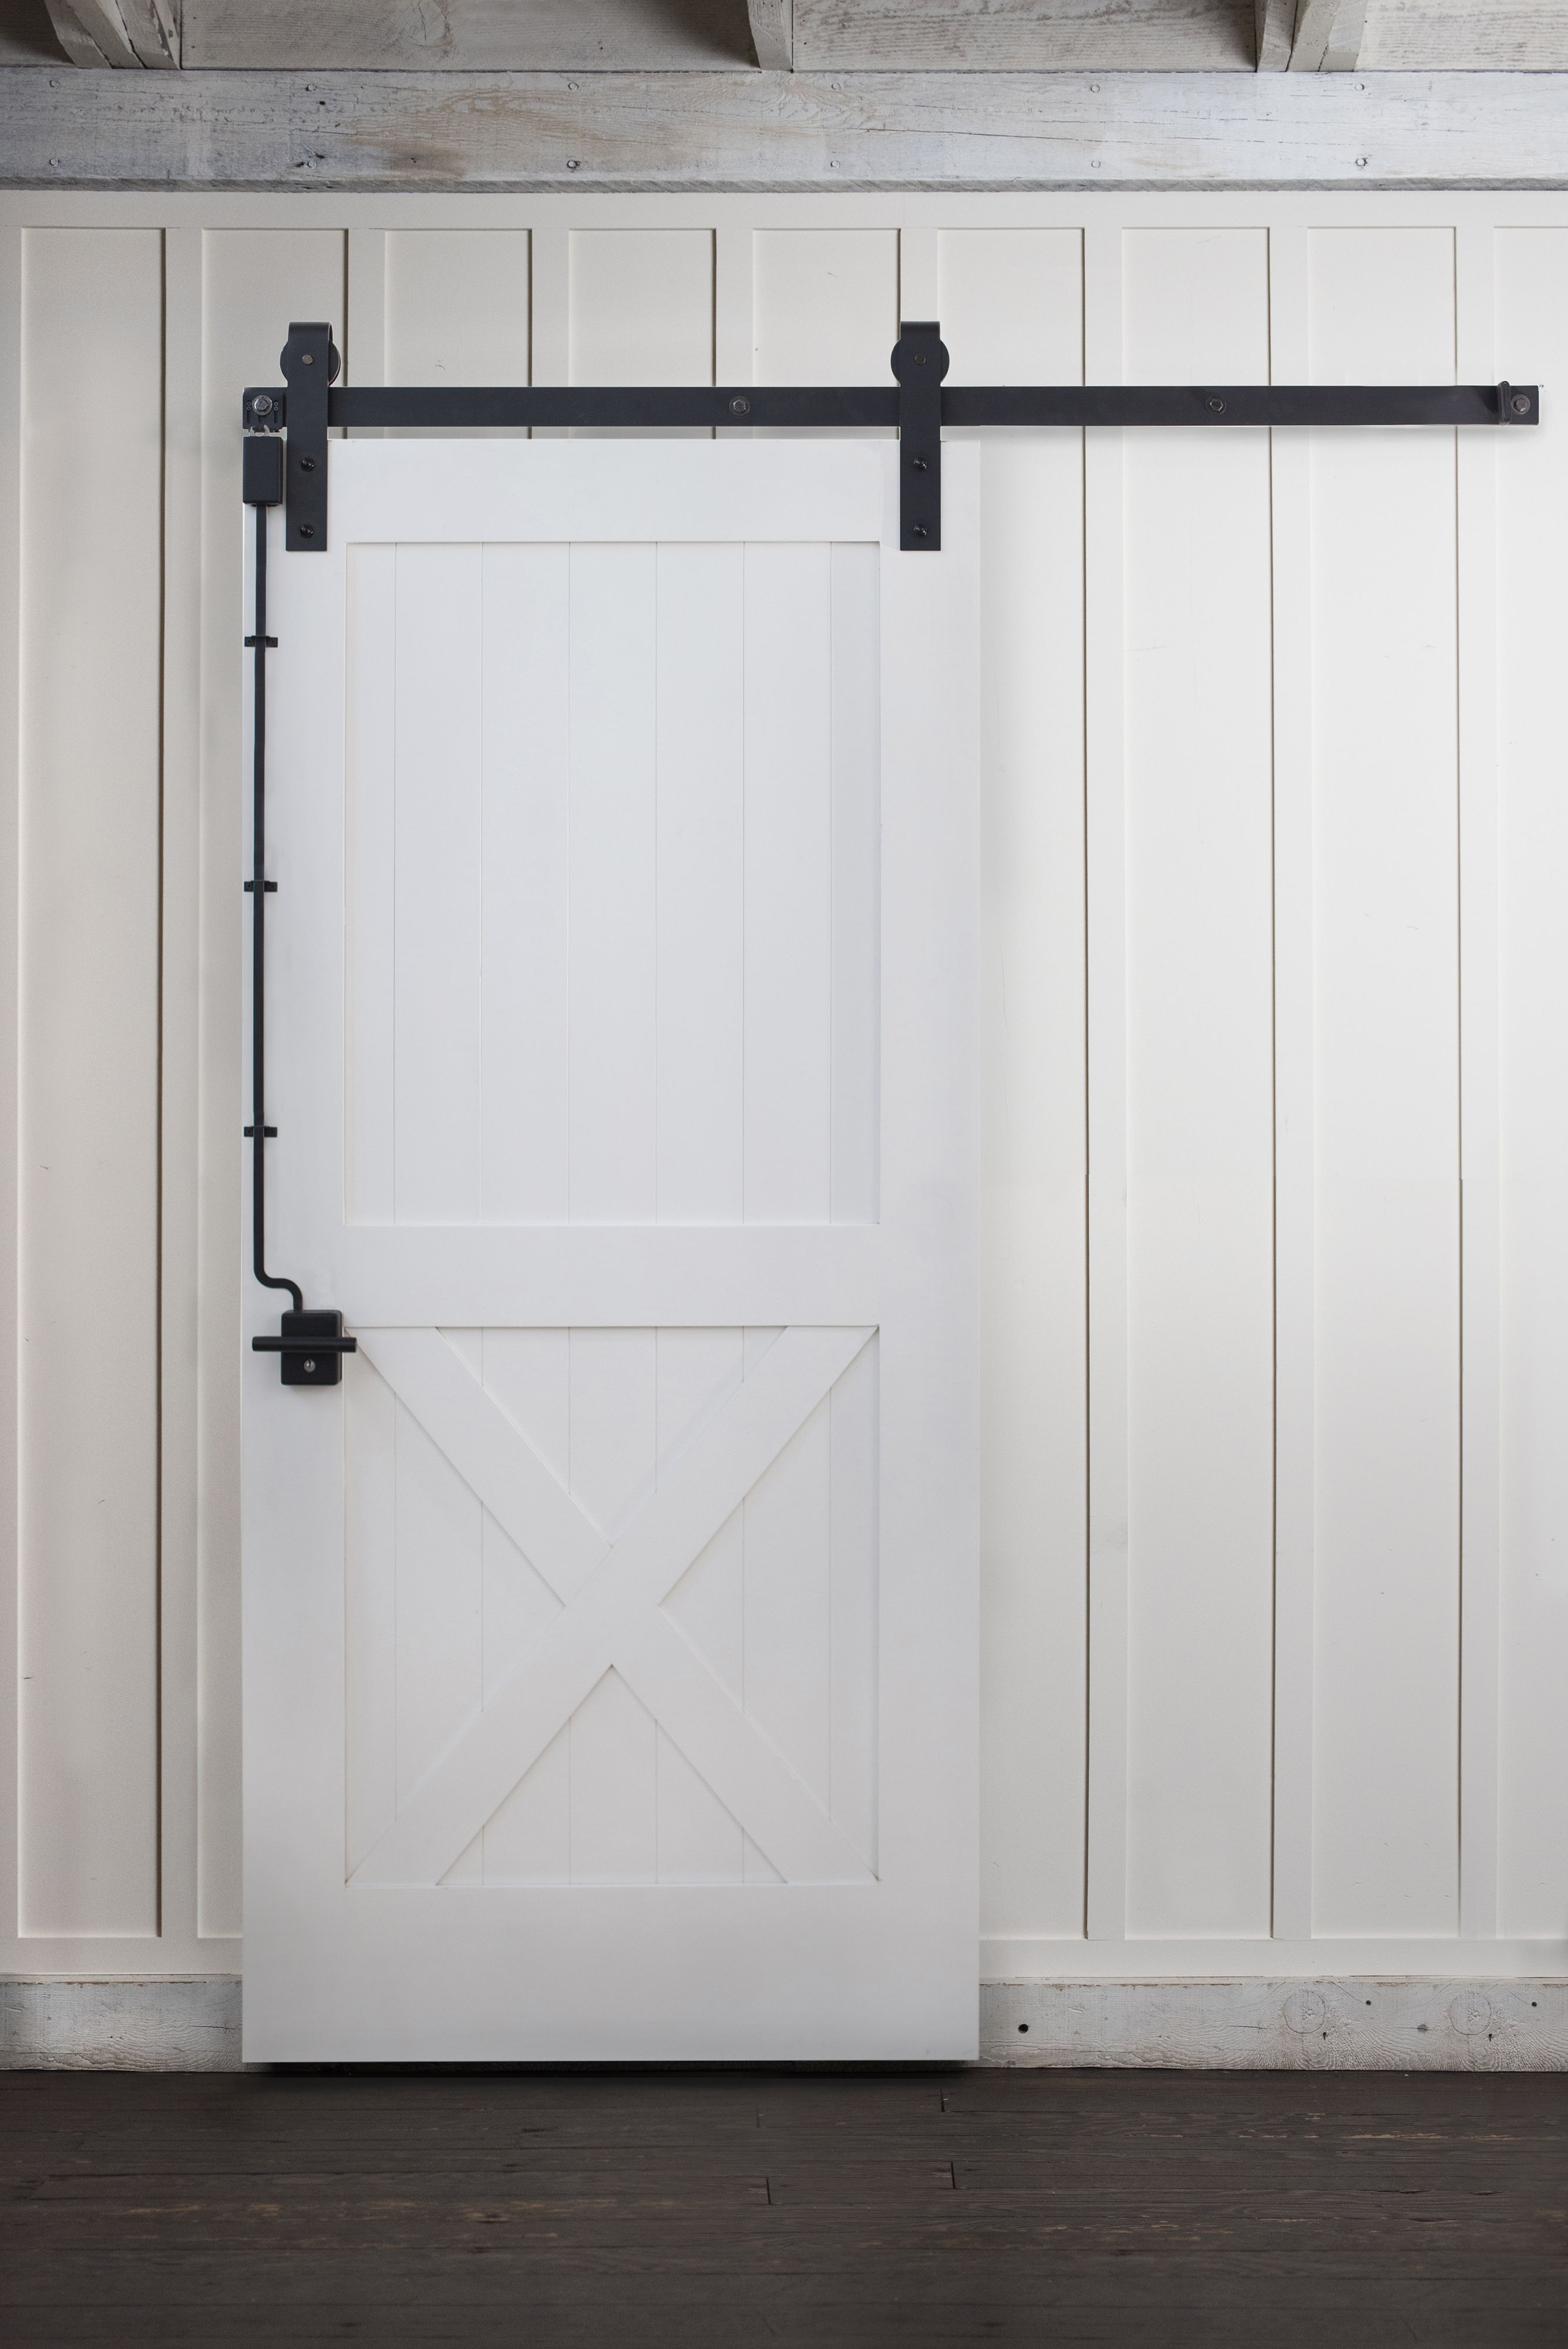 Introducing Our Self Latching Barn Door Lock System Perfect For Sliding Doors Barn Doors More Easy To Barn Door Locks Barn Door Handles Barn Door Latch